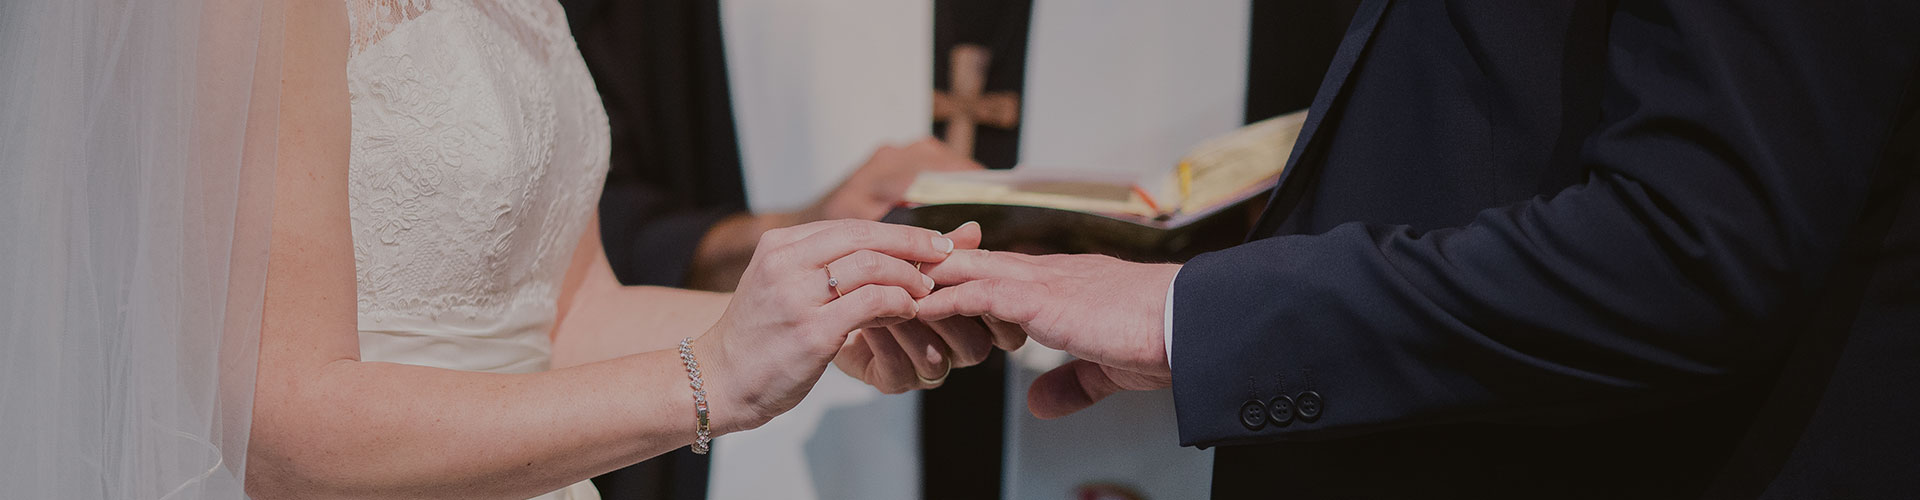 Contract Marriage with a Tourist Visa